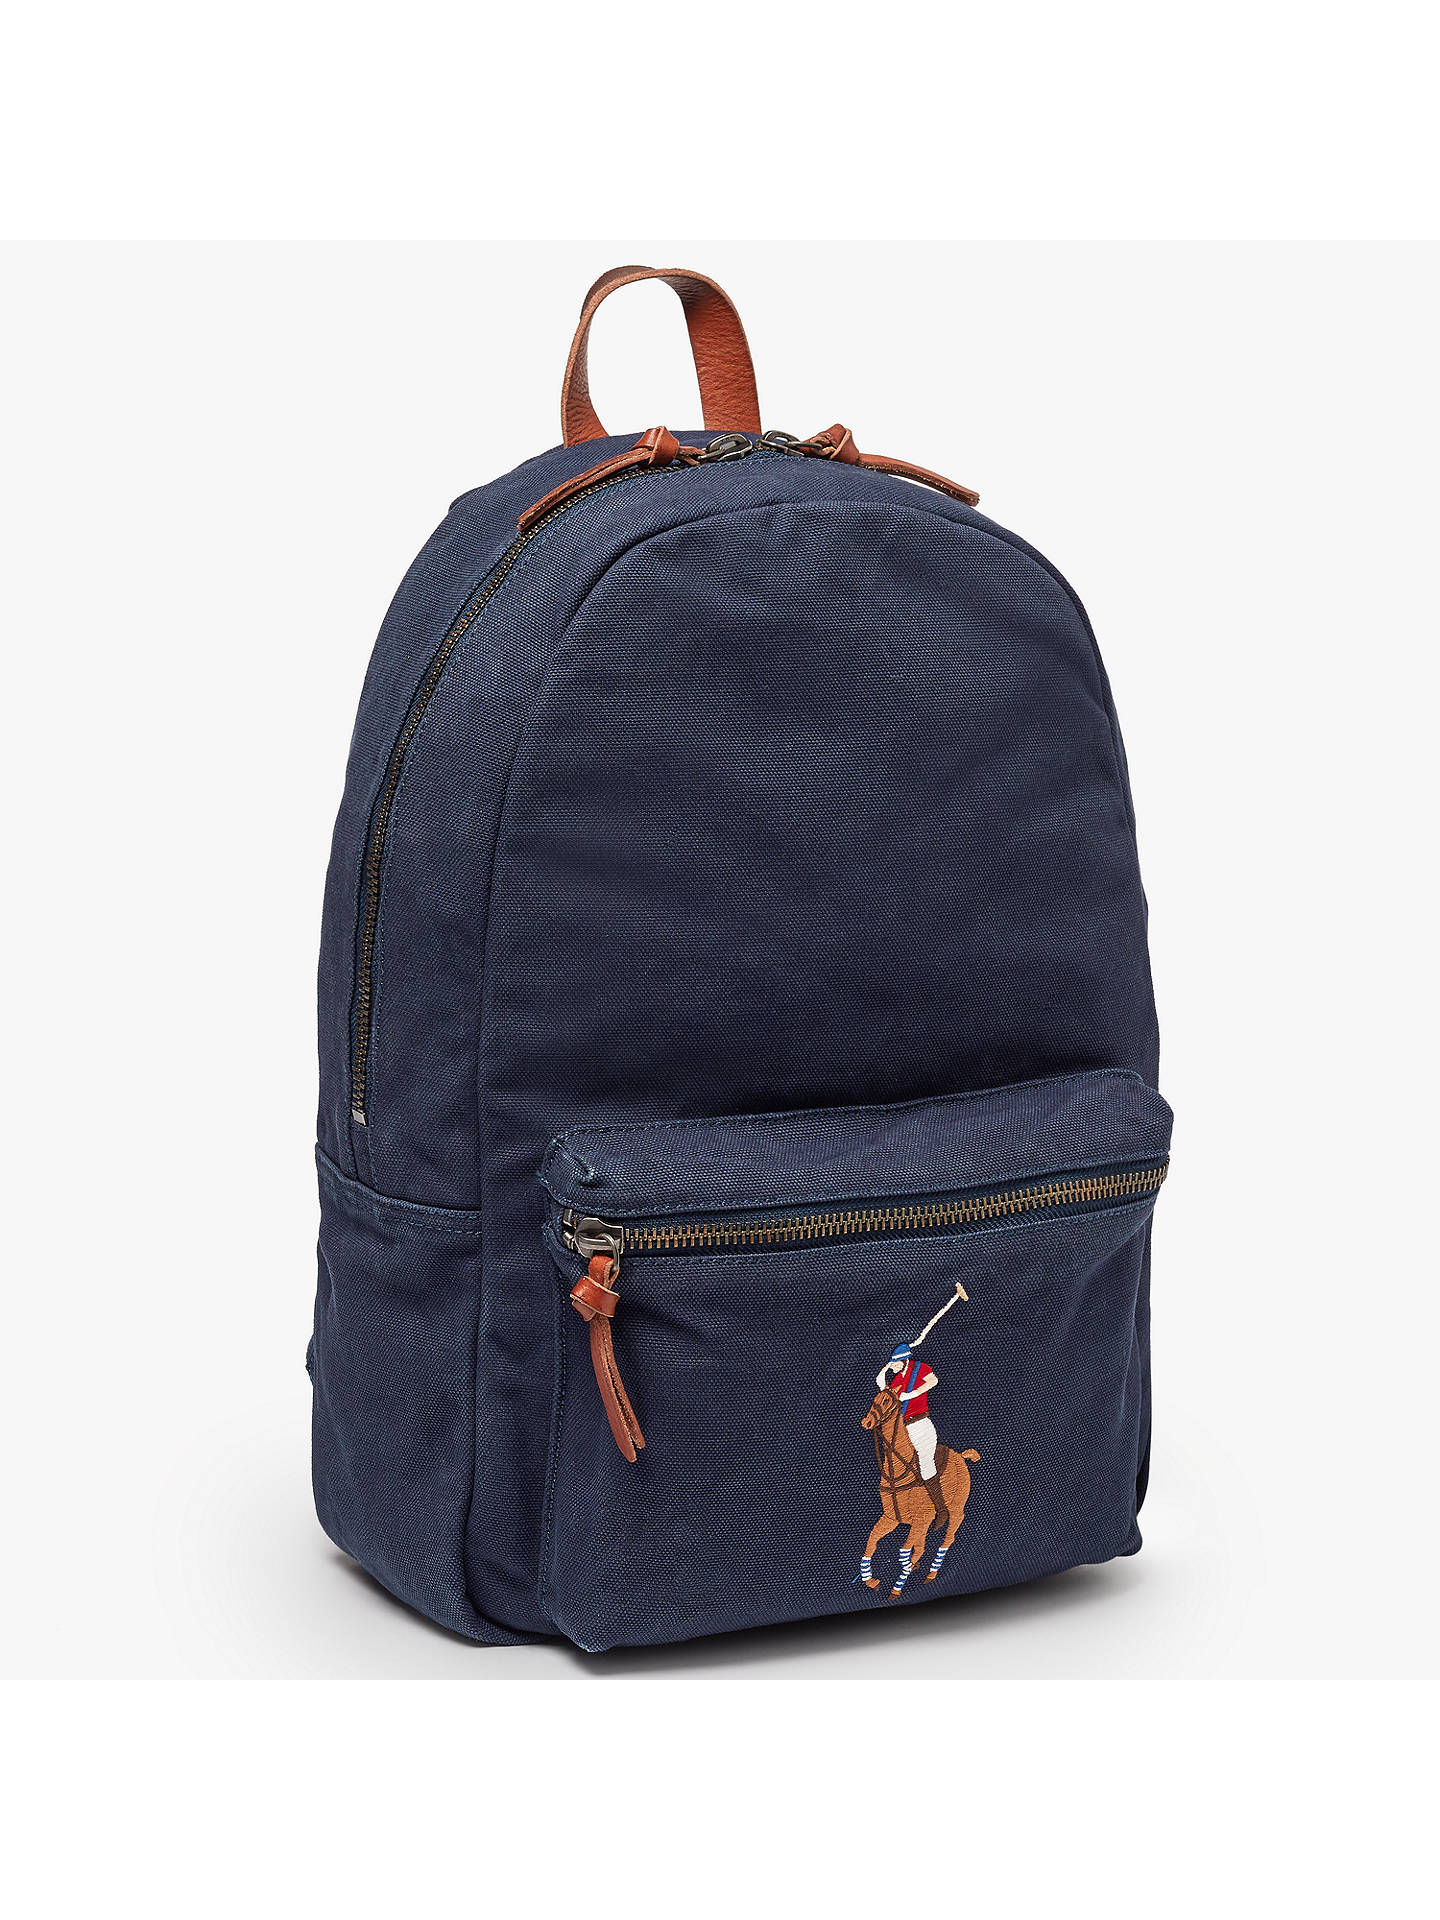 4528ff8b735 BuyPolo Ralph Lauren Canvas Big Pony Backpack, Navy Online at johnlewis.com  ...